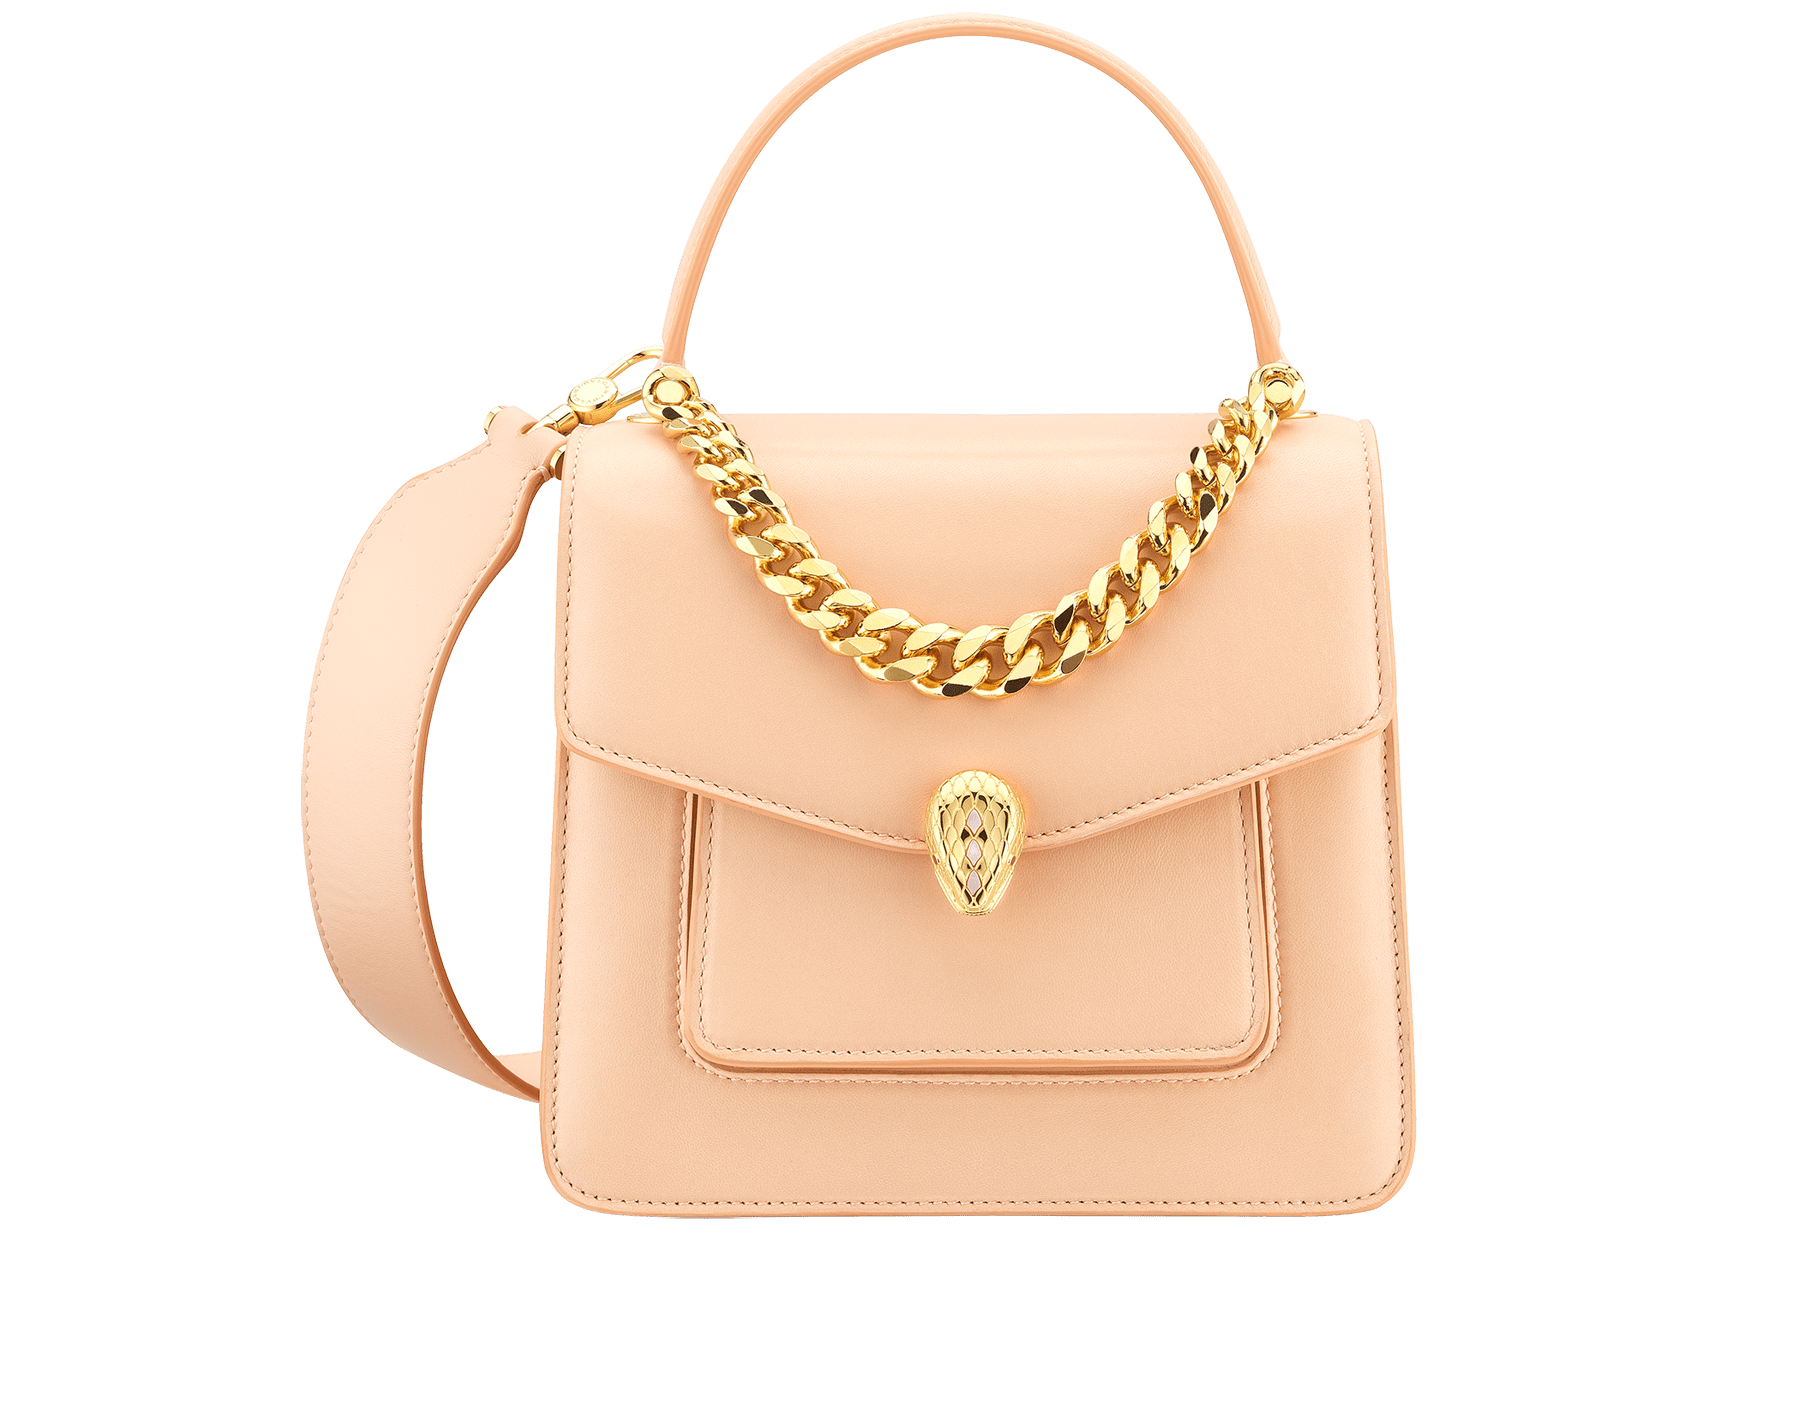 """""""Serpenti Forever"""" small maxi chain top handle bag in peach nappa leather, with Lavender Amethyst lilac nappa leather inner lining. New Serpenti head closure in gold-plated brass, finished with small pink mother-of-pearl scales in the middle and red enamel eyes. 1133-MCN image 1"""